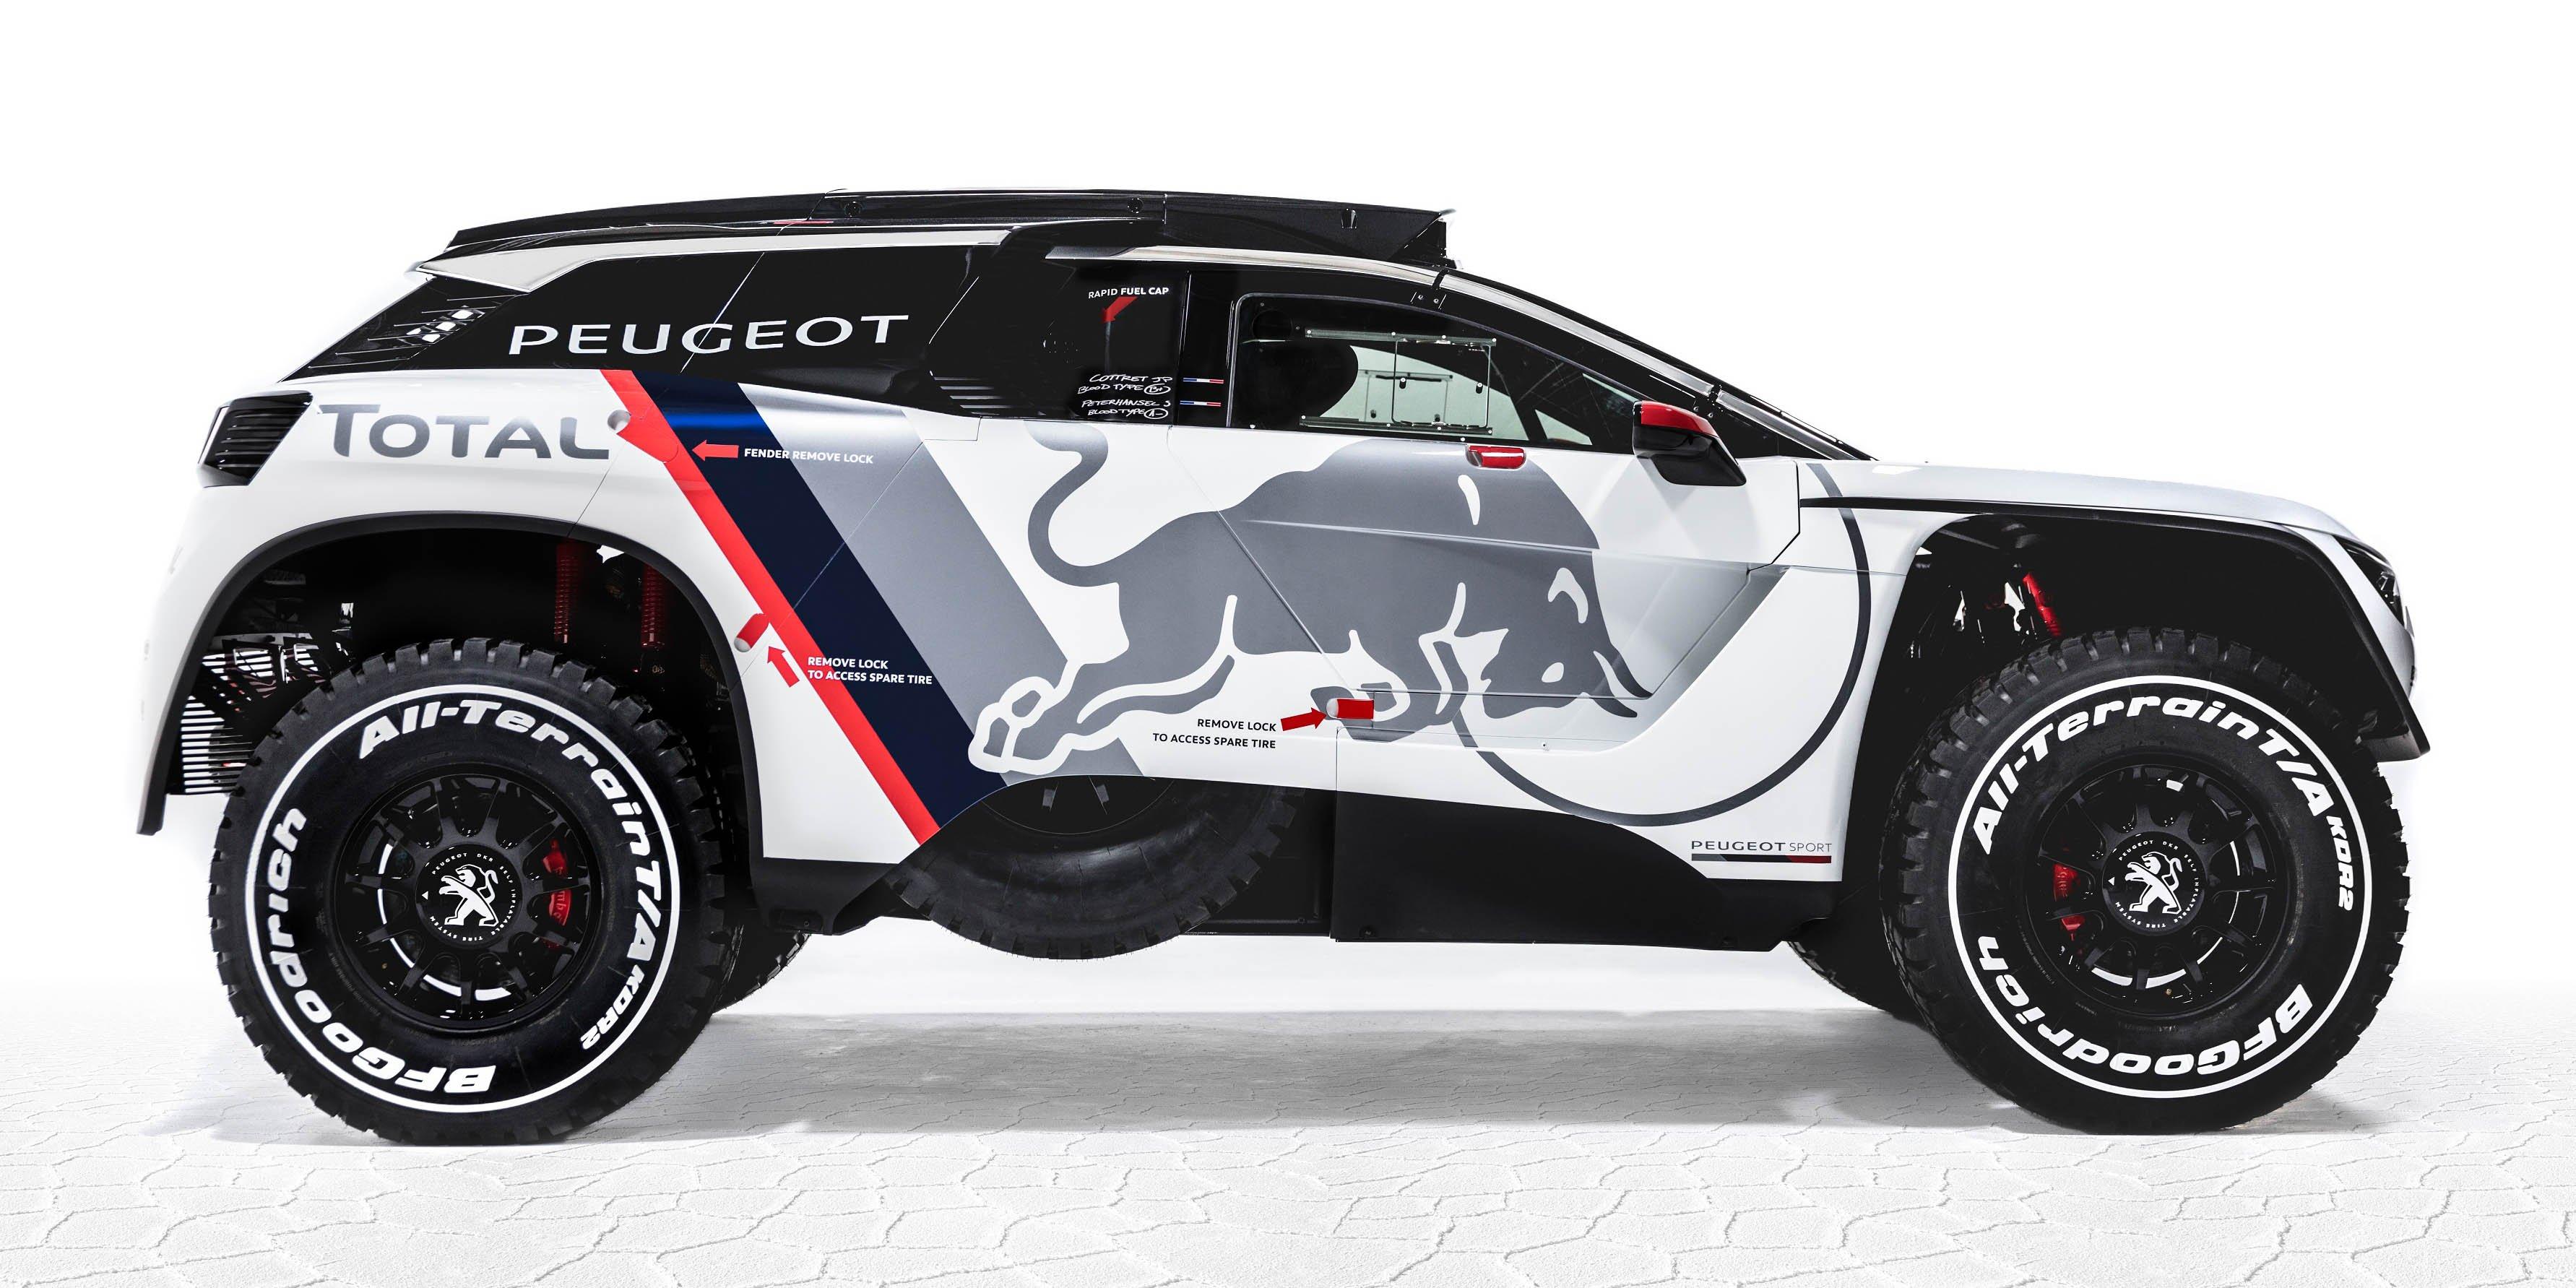 2017 Peugeot 3008 Dkr Twin Turbo Rear Drive Suv Revealed